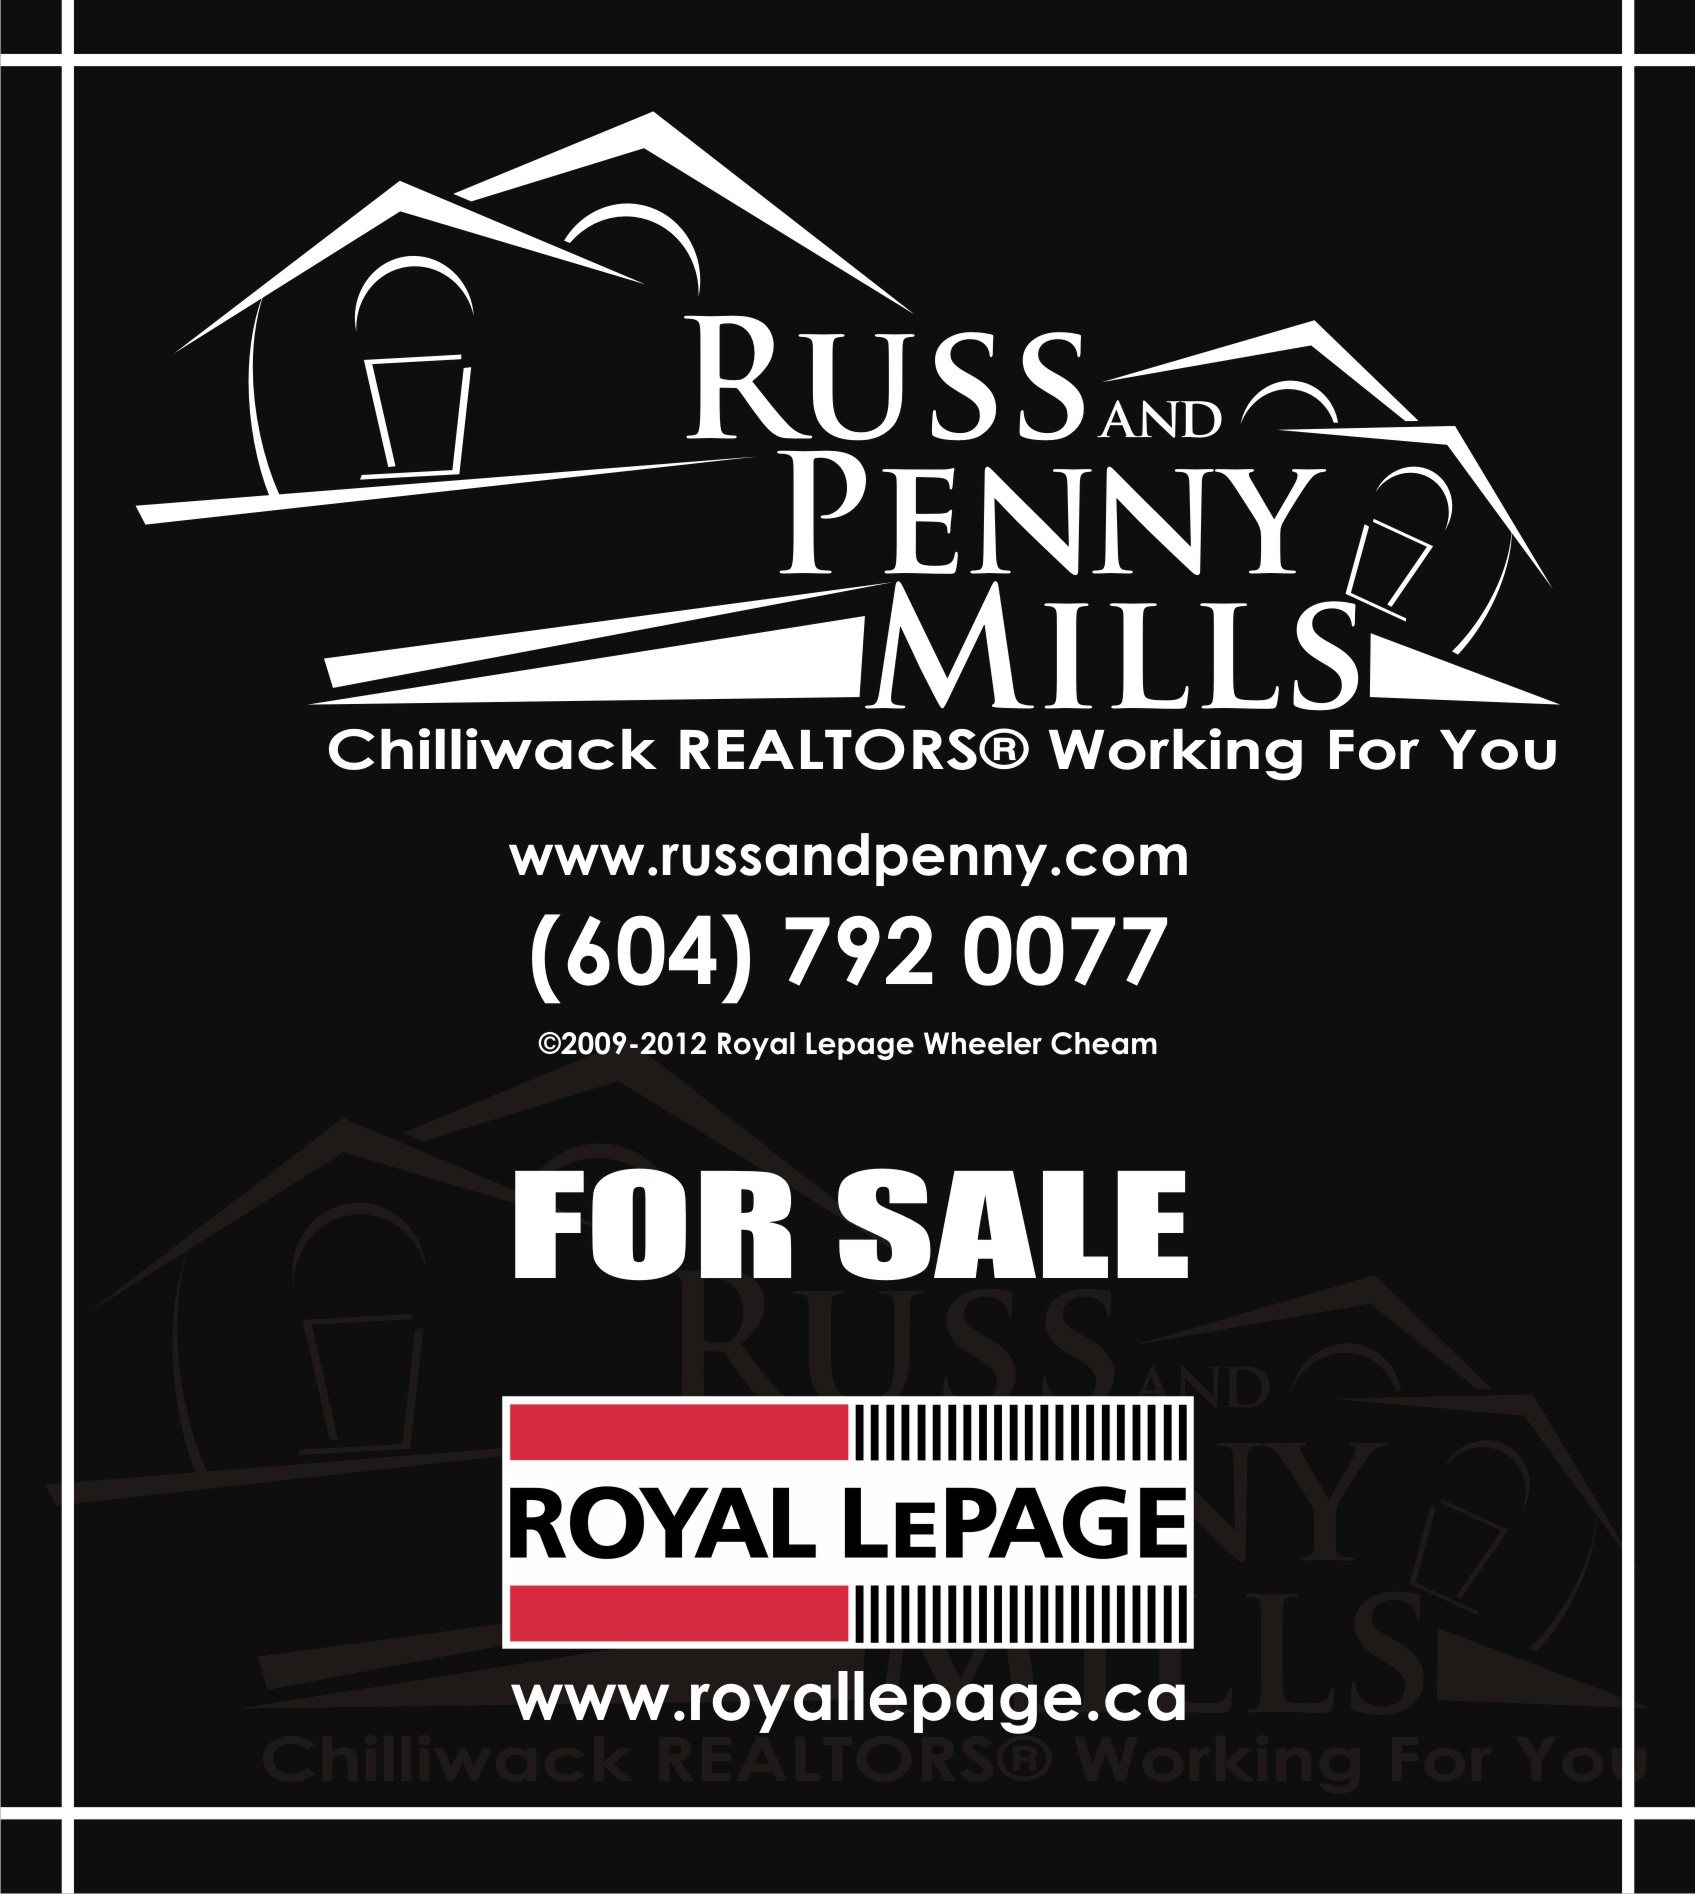 Custom Design by Private User - Entry No. 111 in the Custom Design Contest Fun Custom Design for Russ and Penny Mills (realtors).